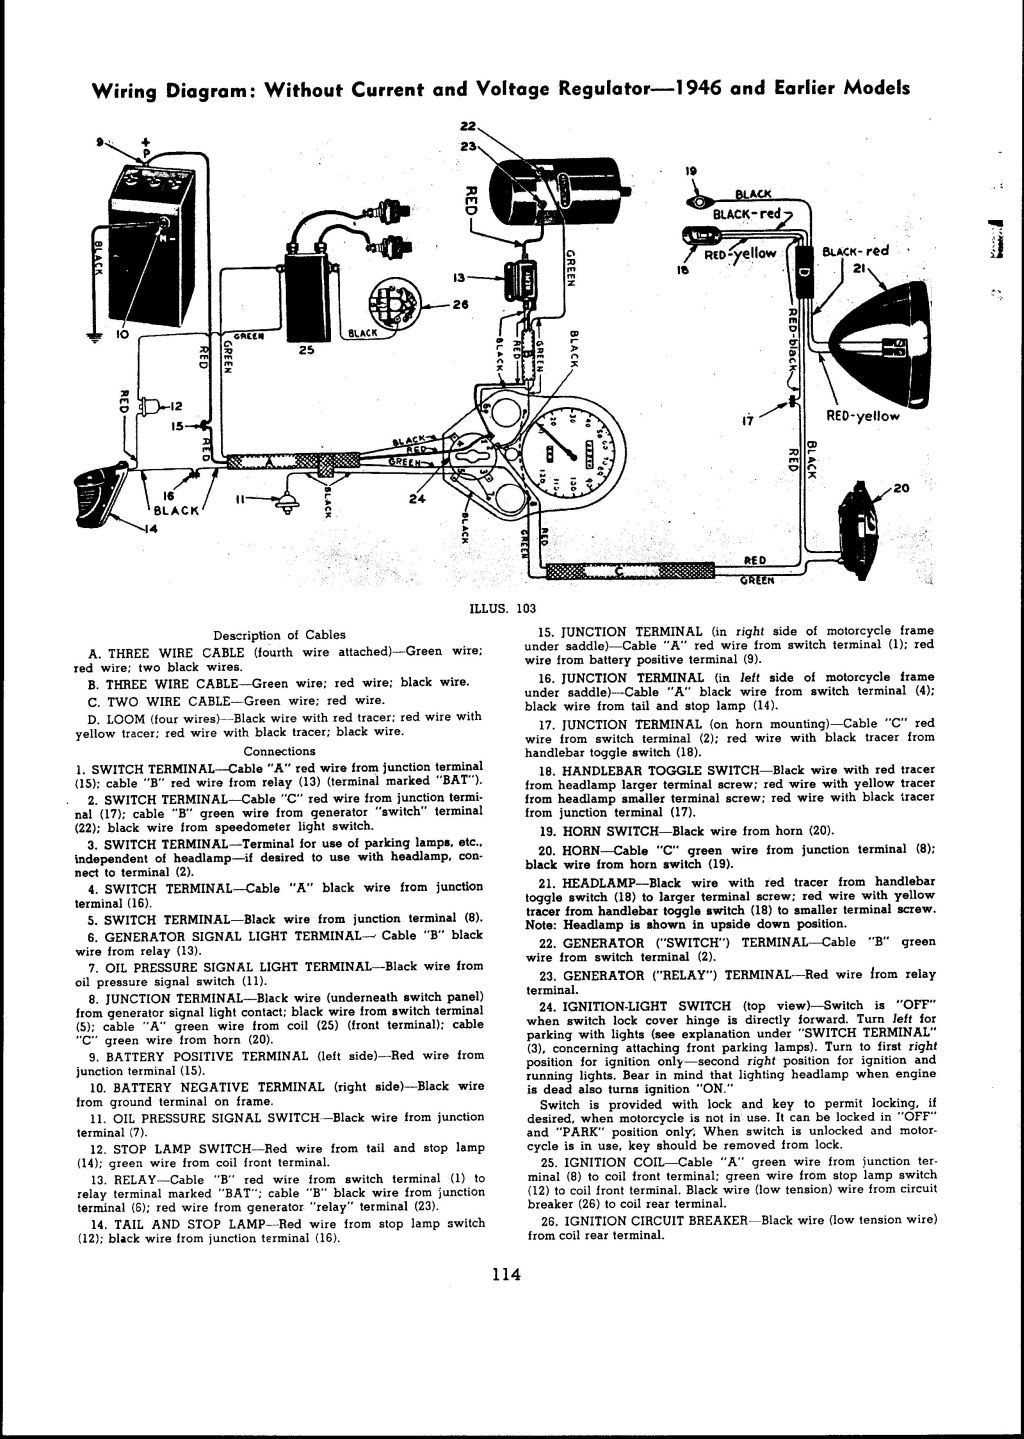 wl wiring diagram simple wiring diagram 1941 harley davidson wl restoration re wiring the harley davidson wl wiring circuits wl wiring diagram